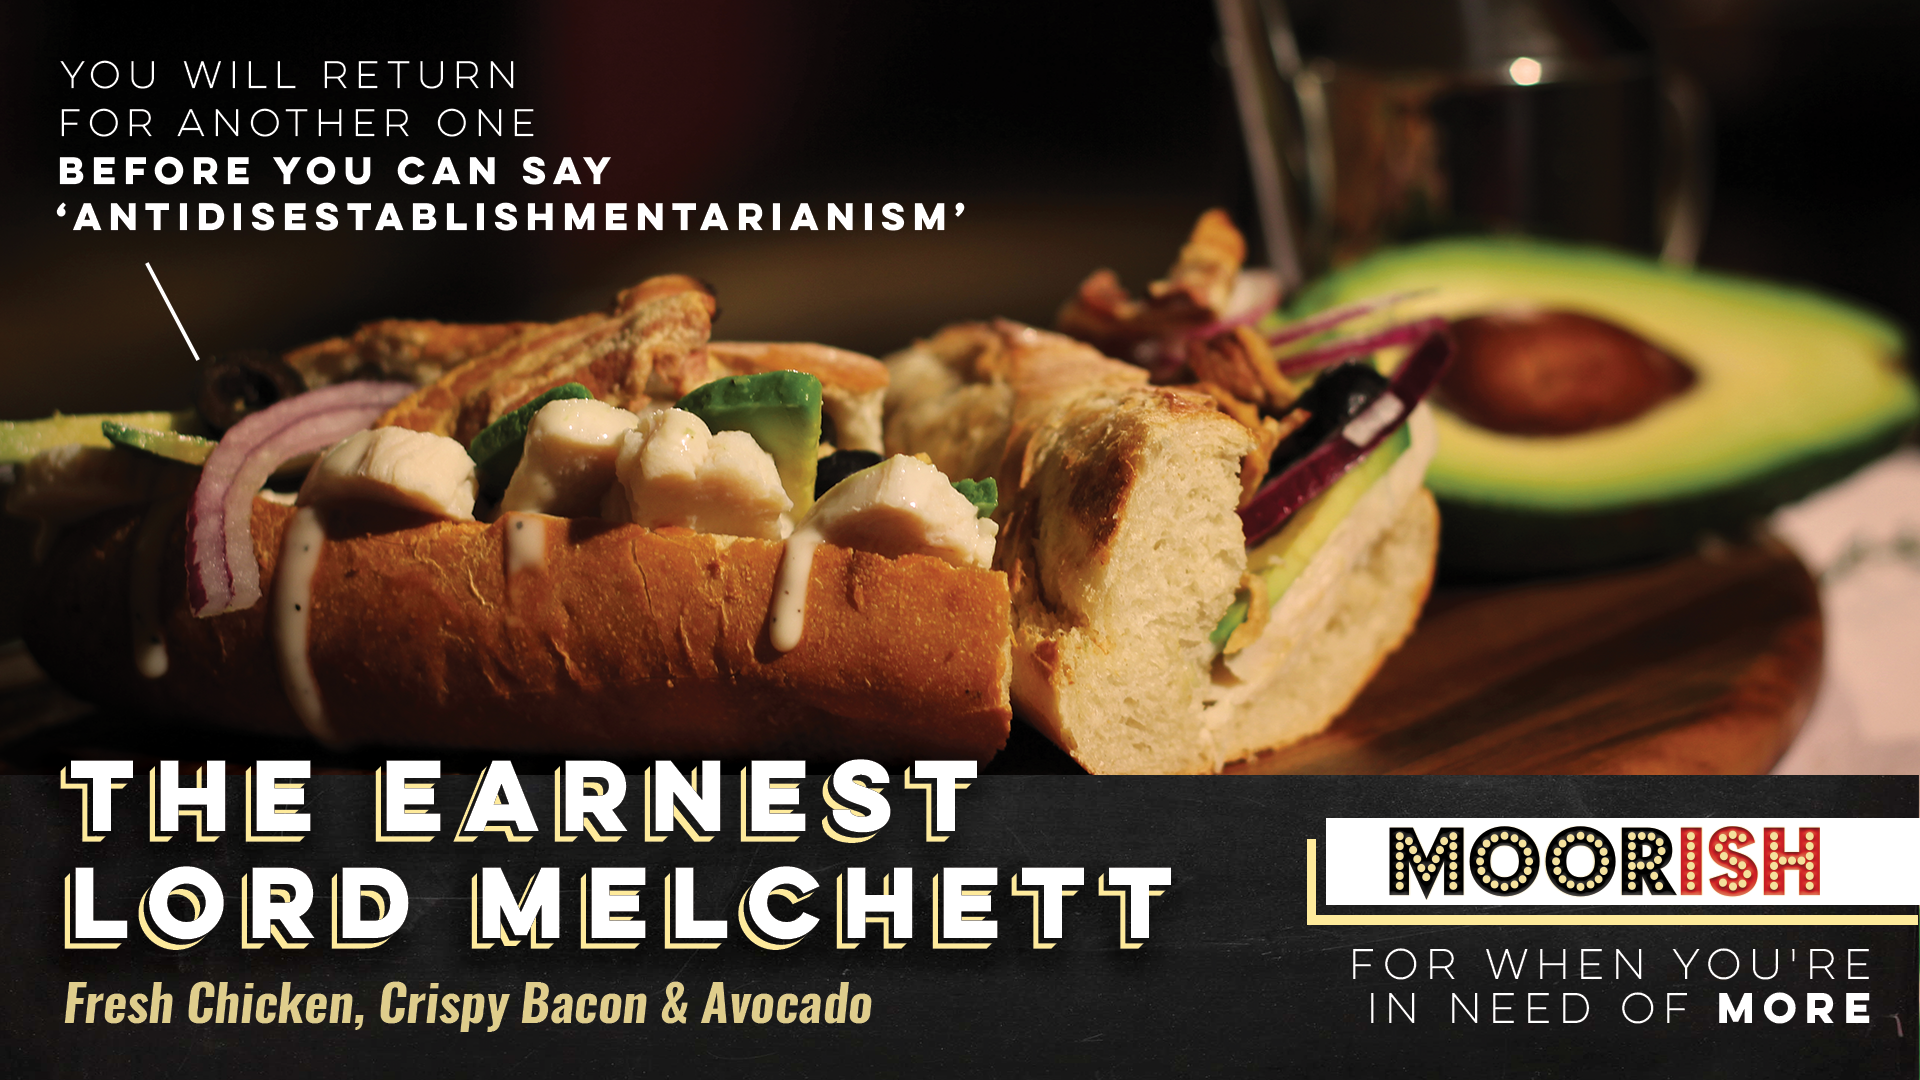 Moorish Sandwich Menu Ad 1.png